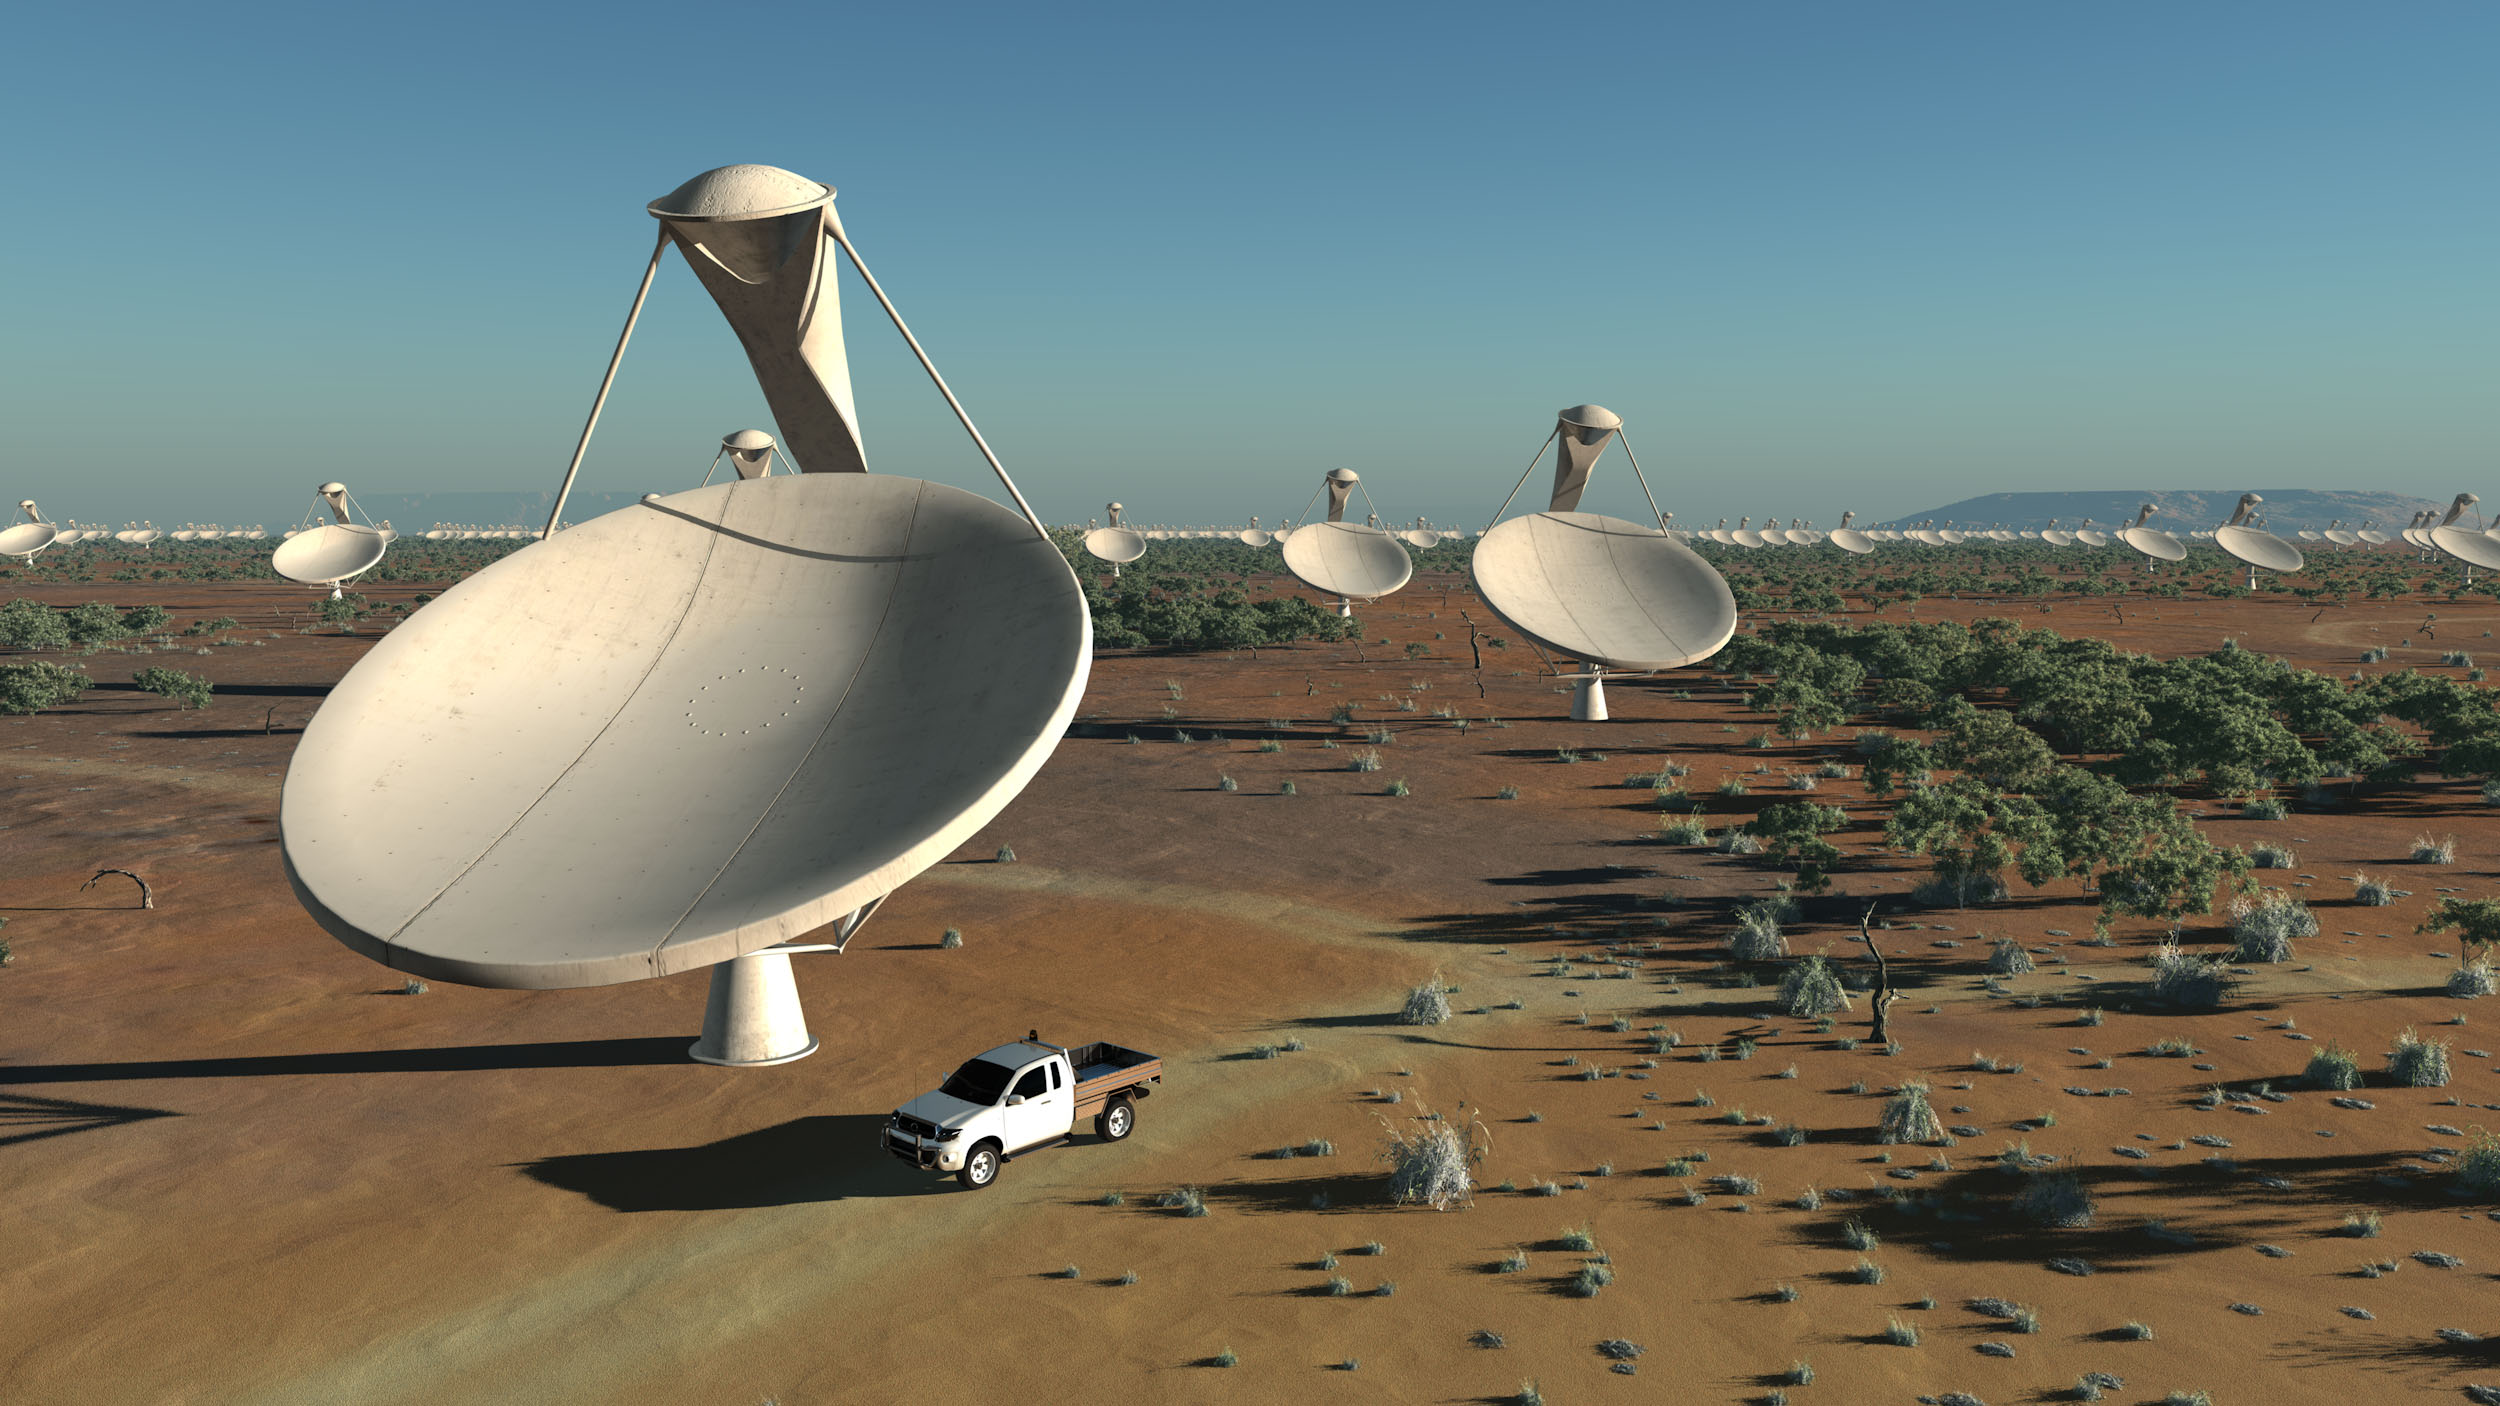 Square Kilometer Array (SKA)